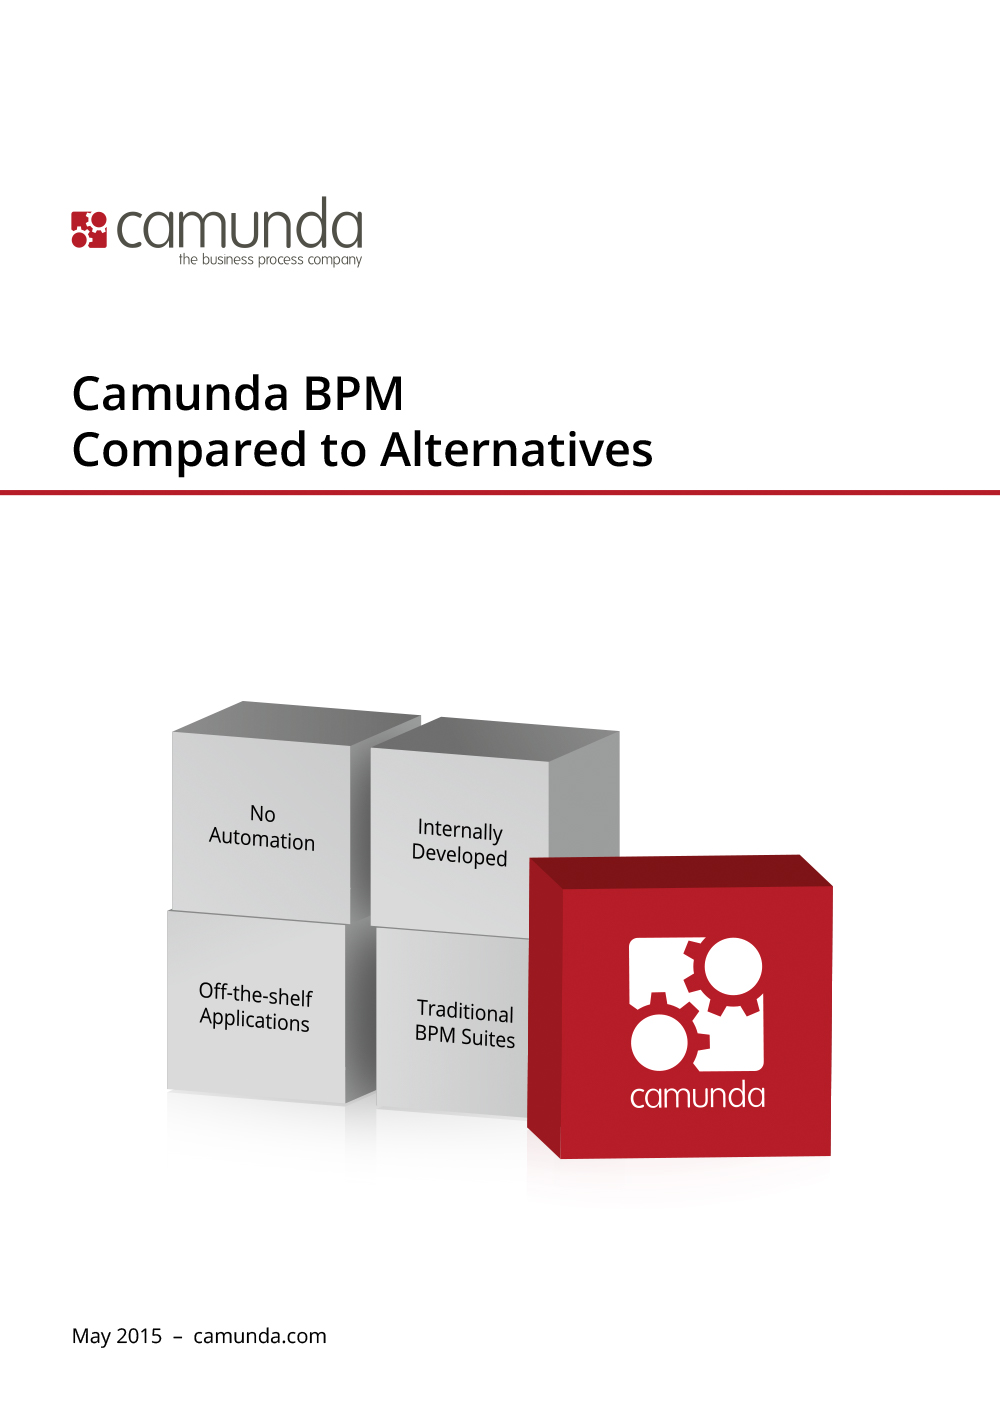 Camunda BPM compared to alternatives